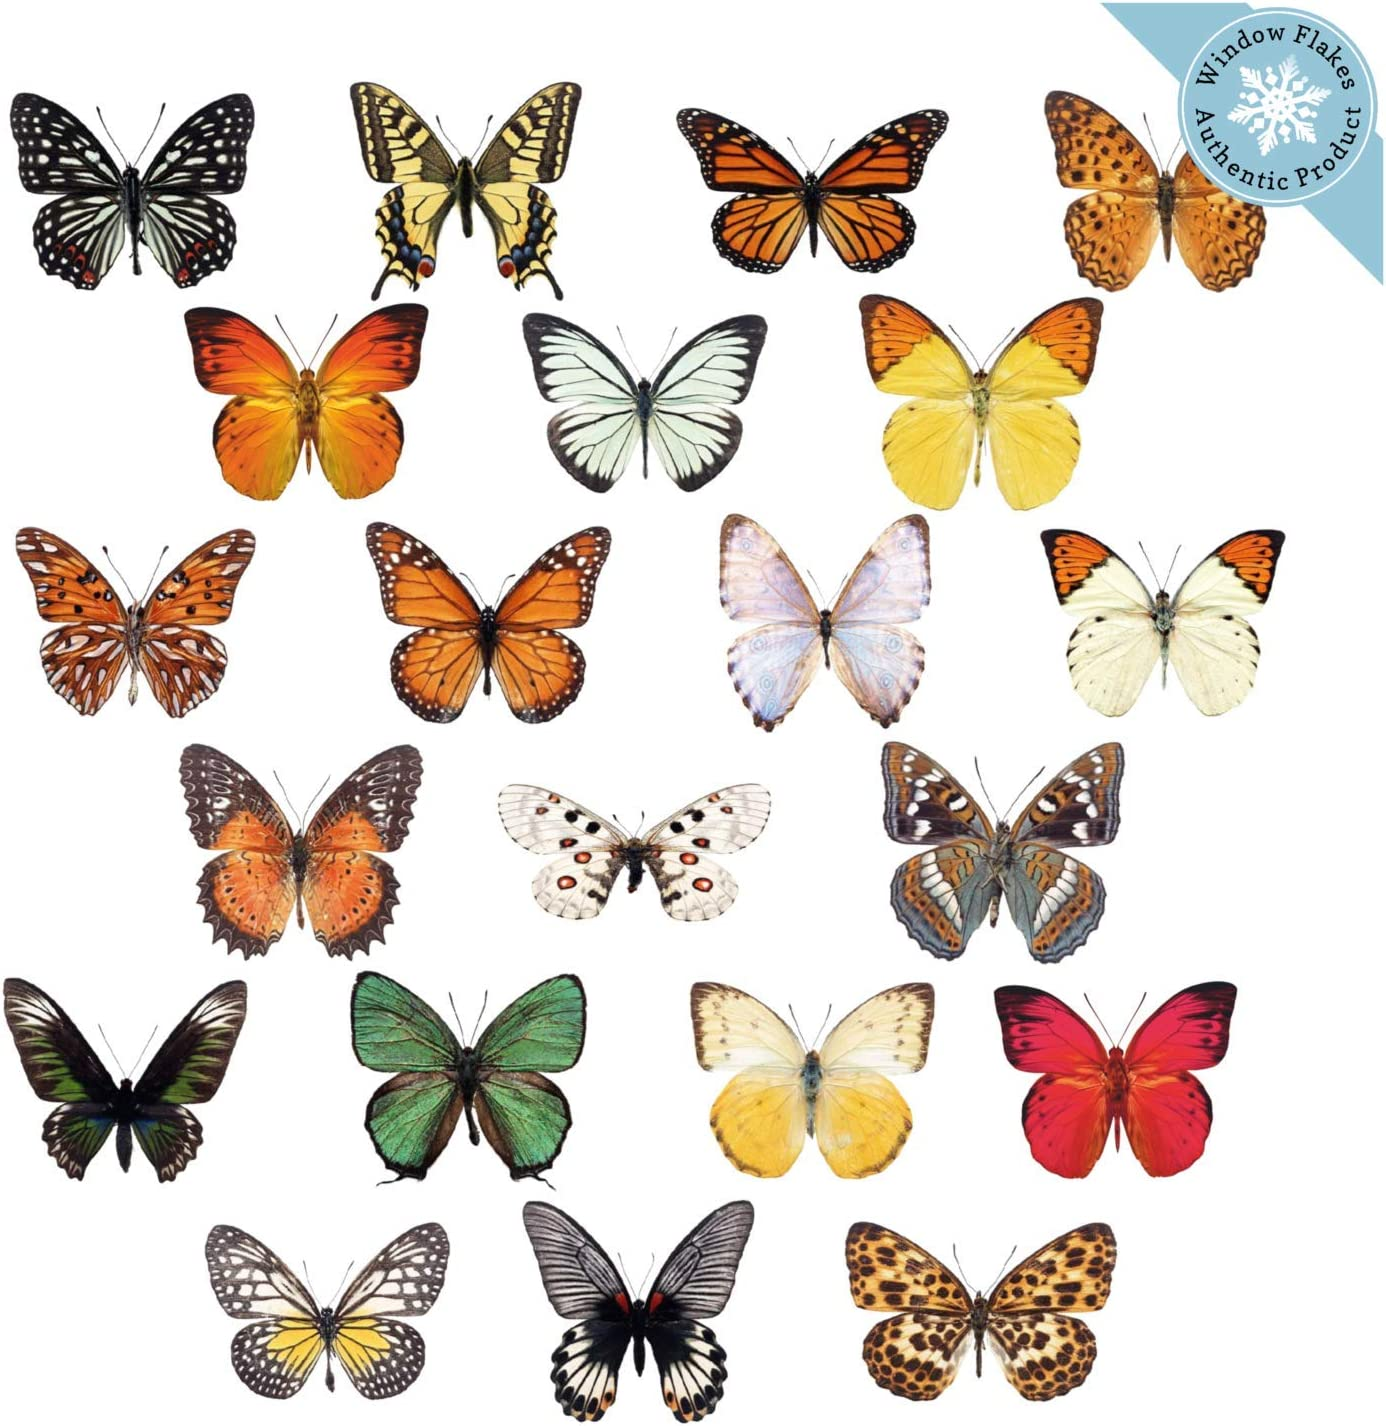 21 Butterfly Window Clings for Glass Windows and Doors | Window Decals for Birds Strikes | Anti Collision Window Stickers Decor | Decorative Butterflies Window Decals for Sliding Glass Doors